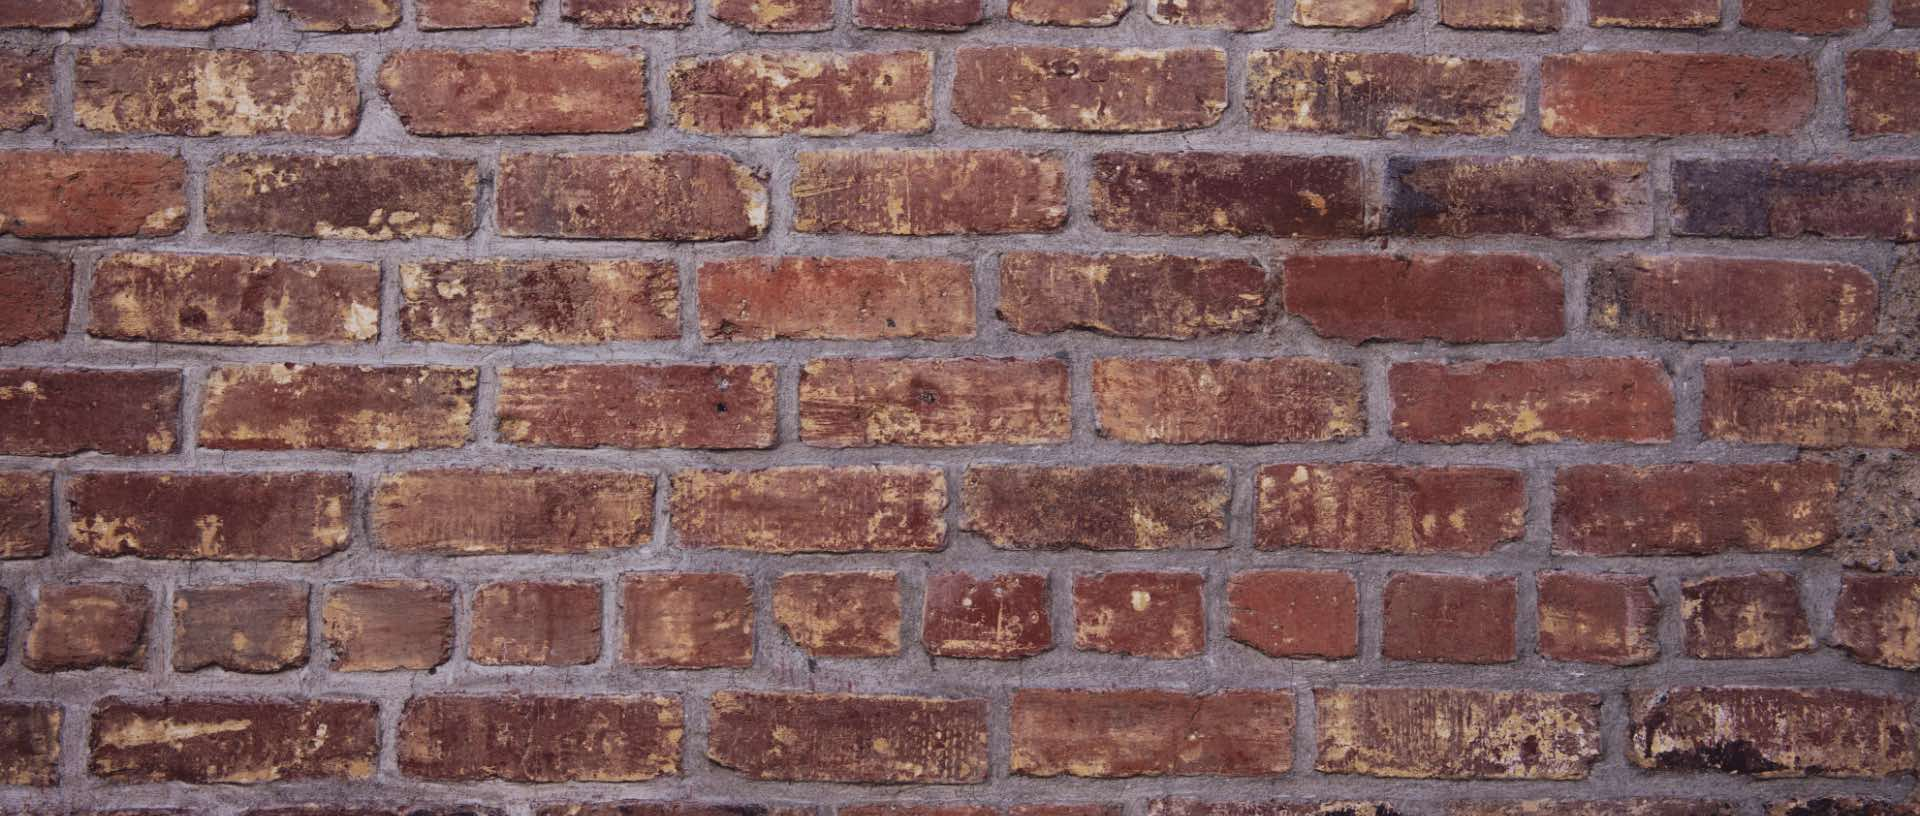 Photo of a brick wall background